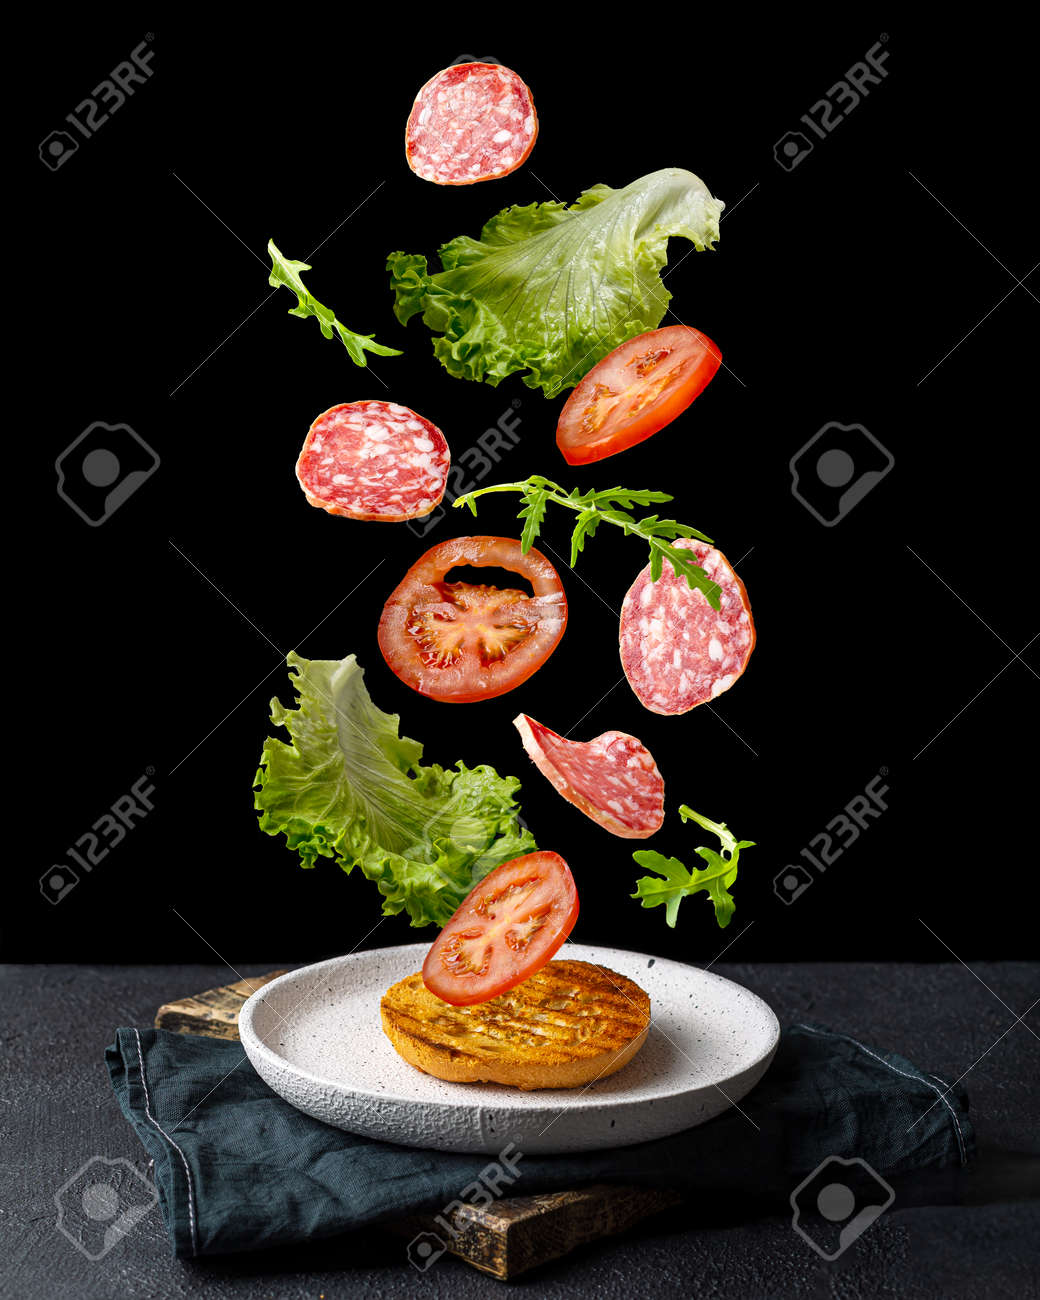 Creative concept with falling food on black backdrop - 172180719